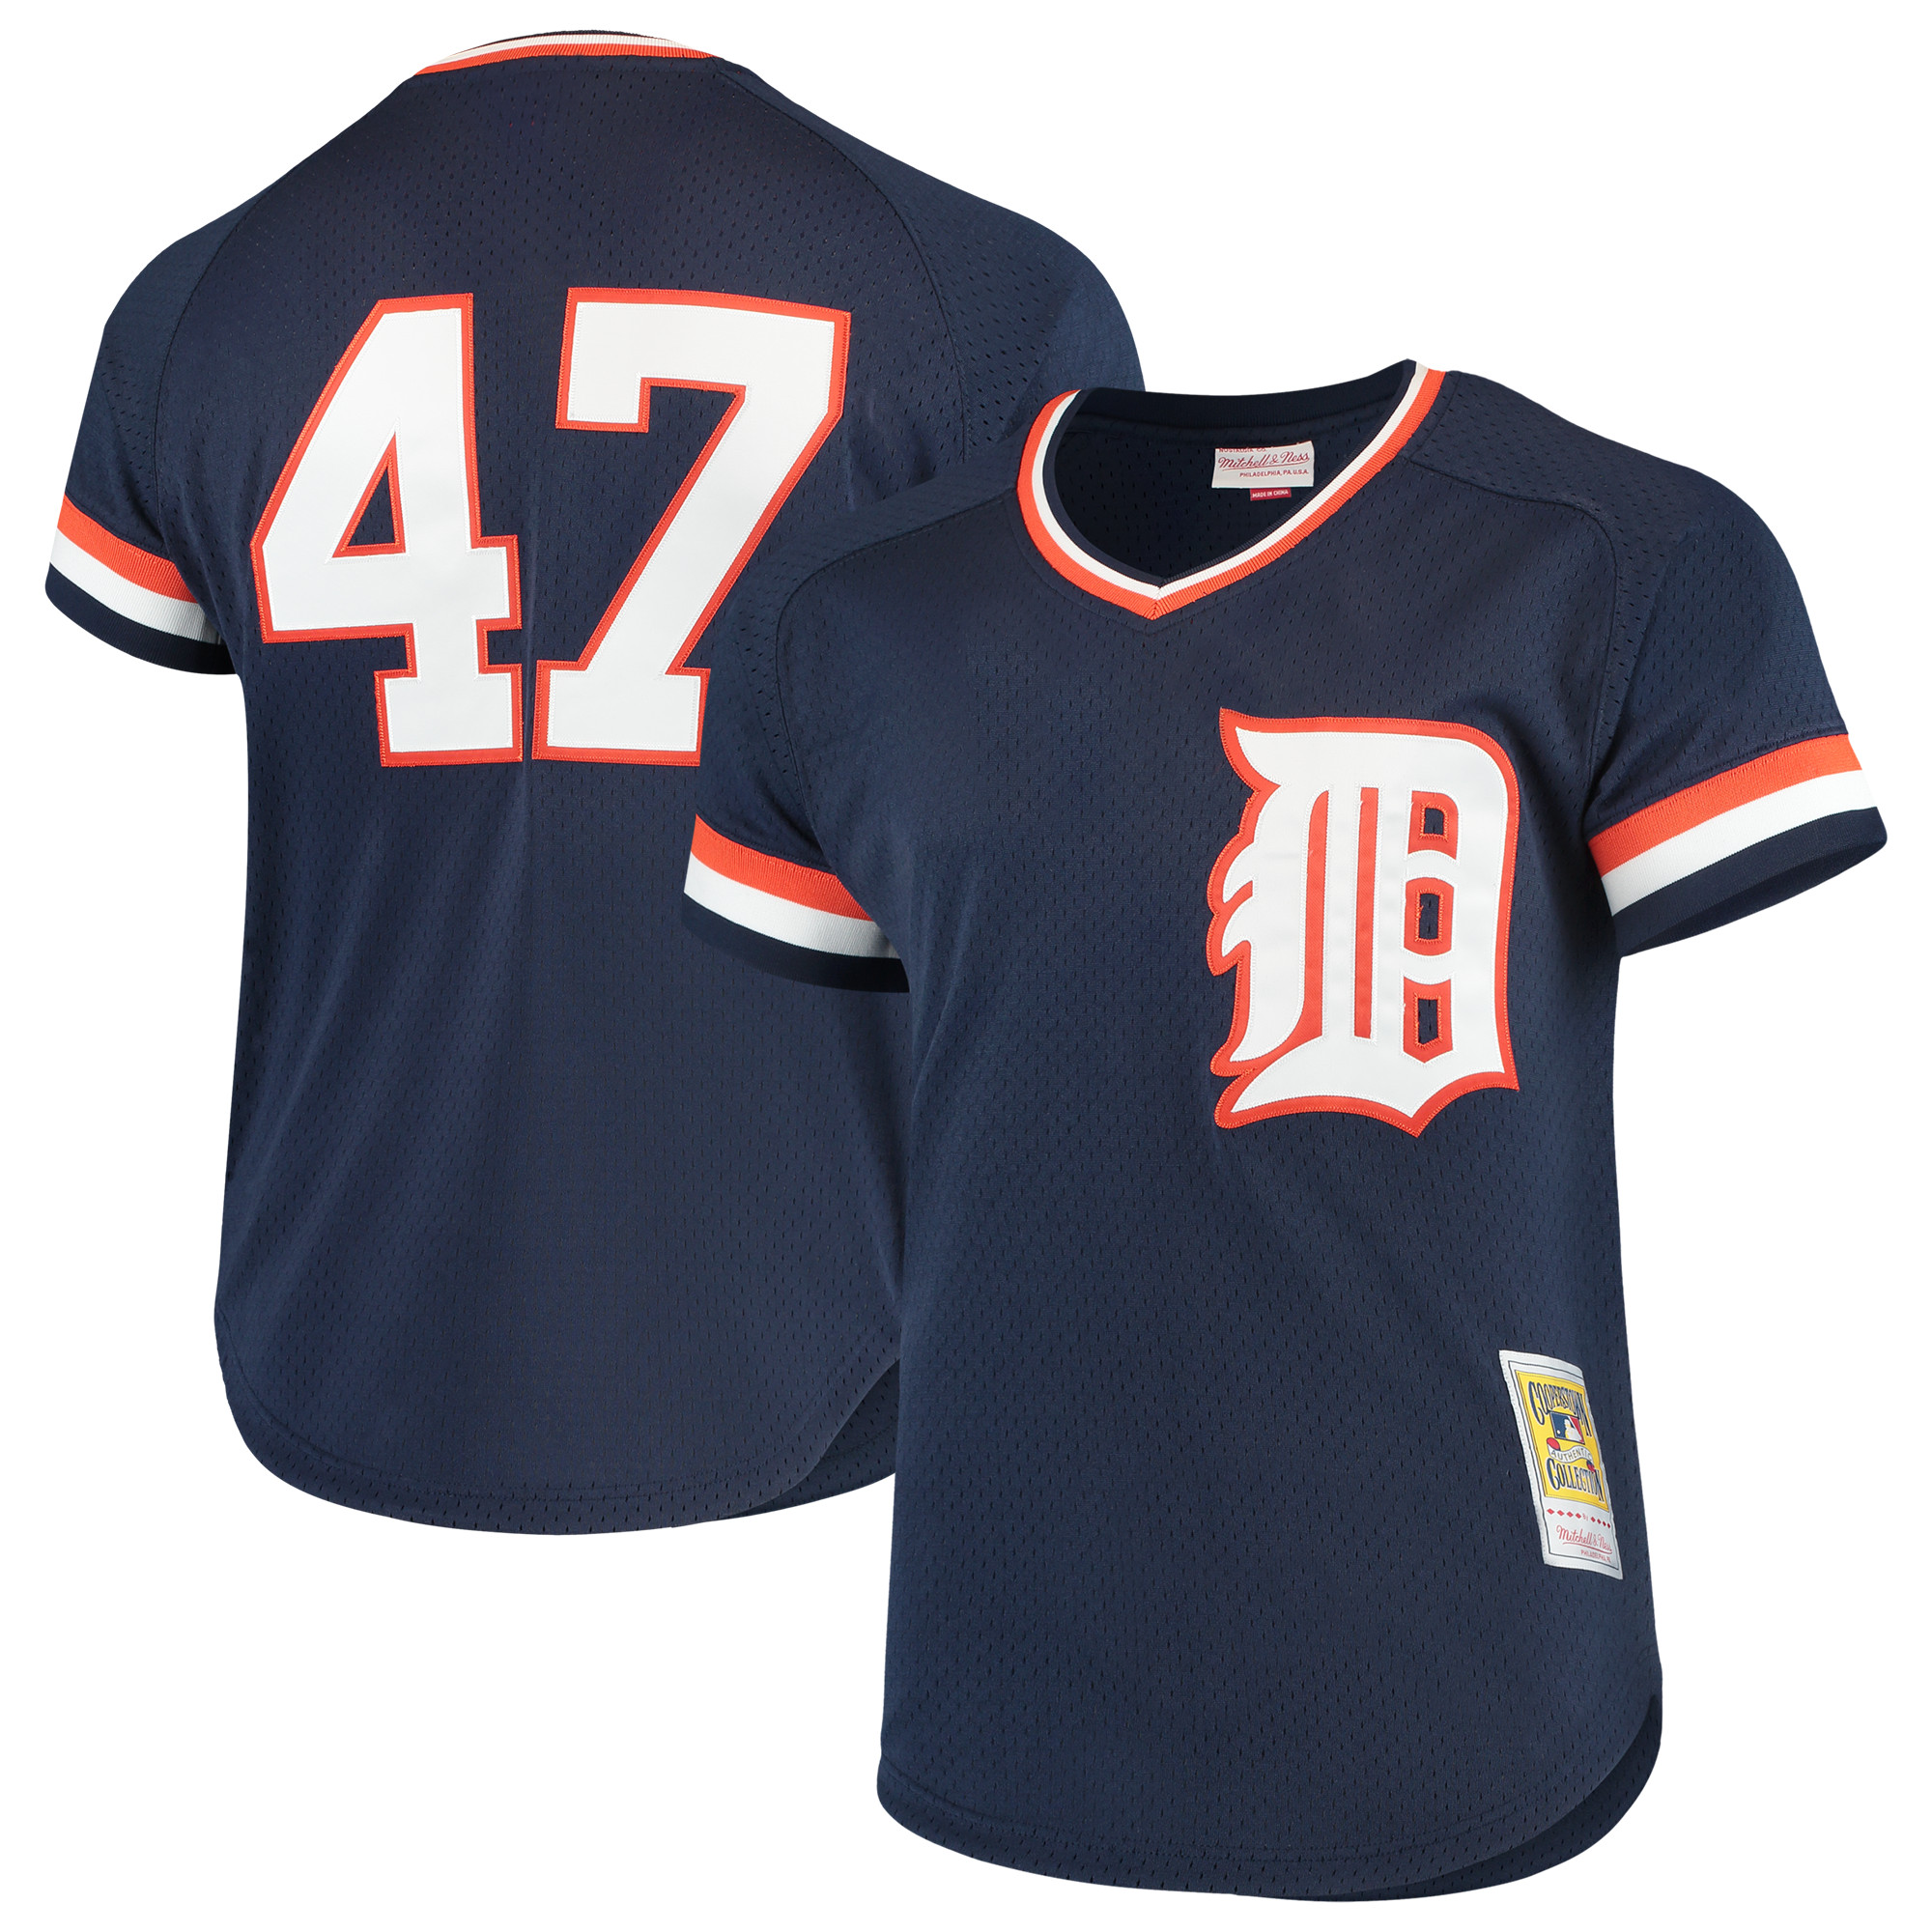 Jack Morris Detroit Tigers Mitchell & Ness Cooperstown Collection Mesh Batting Practice Jersey - Navy